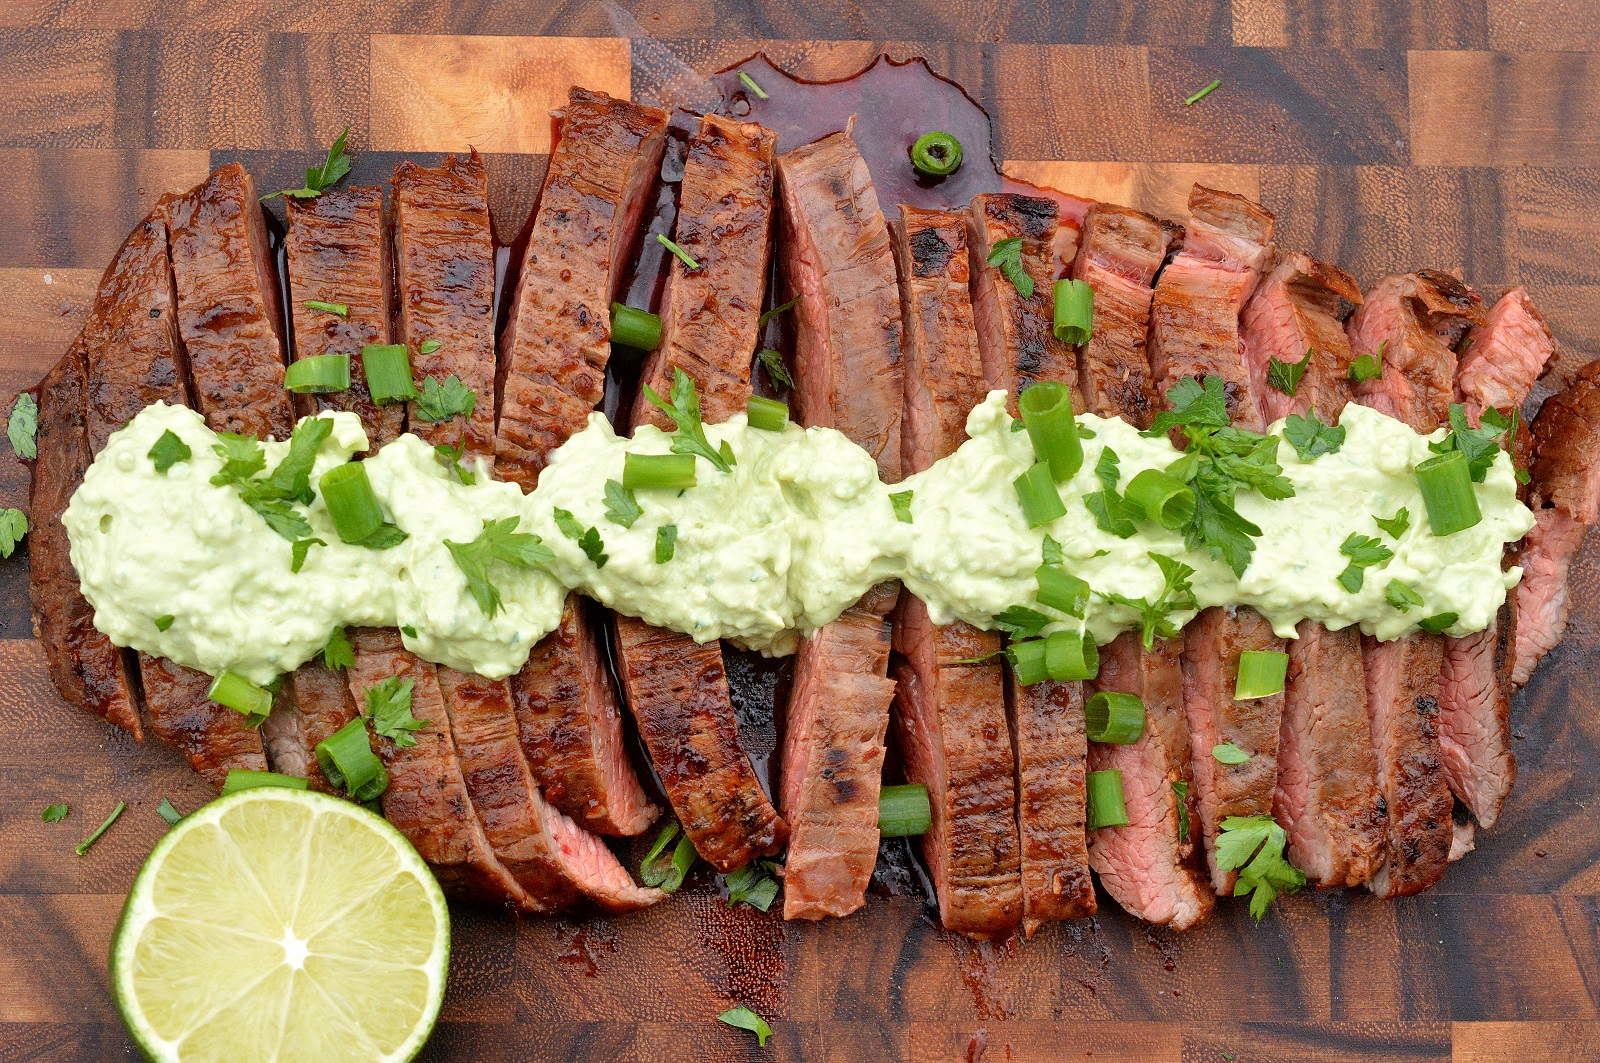 Chipotle Grilled Steak with Avocado Cream